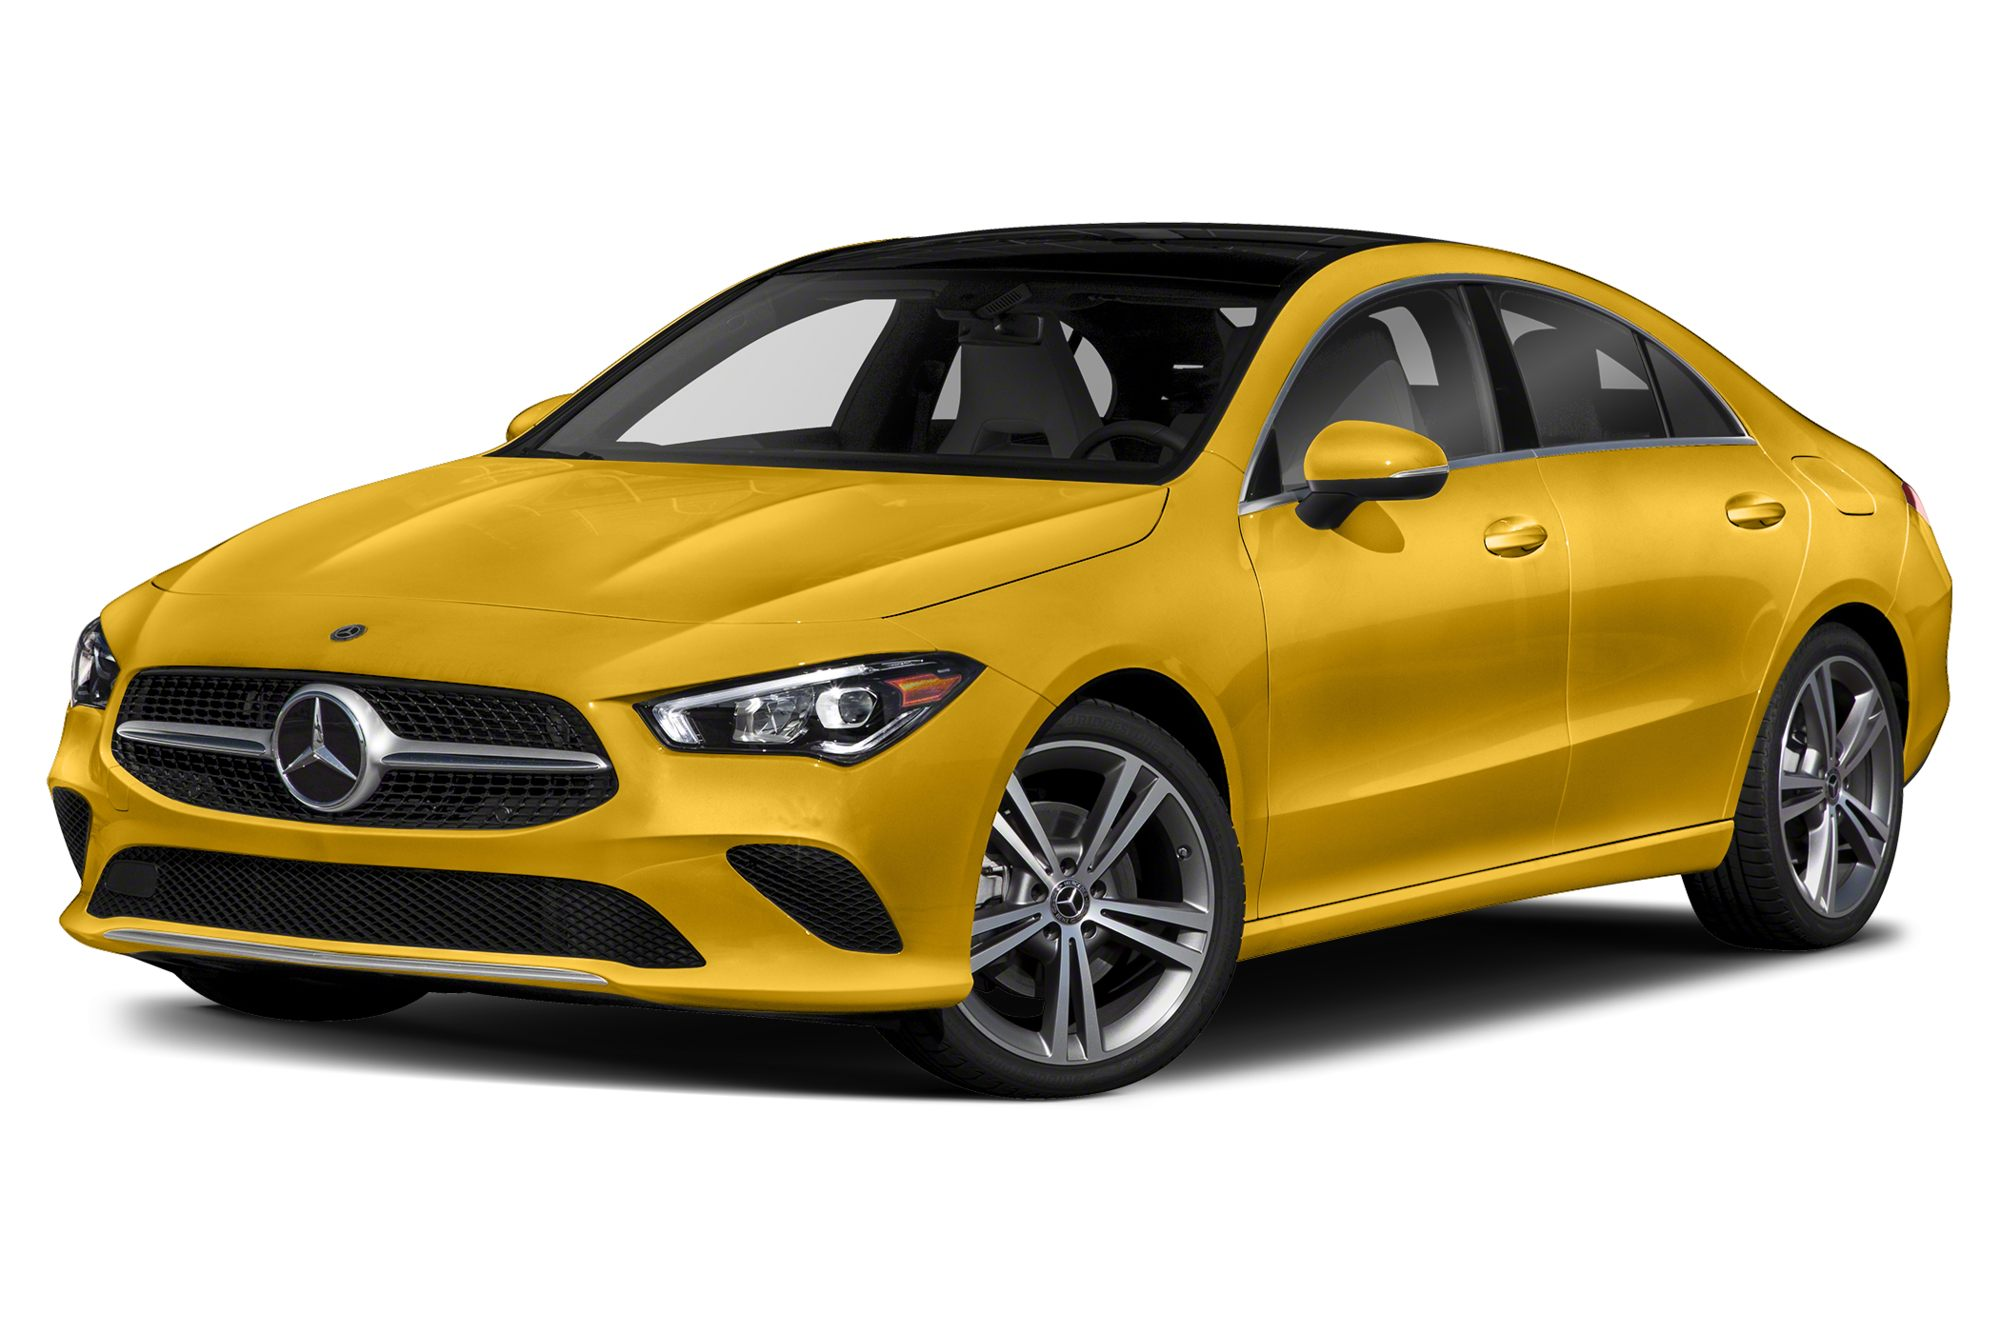 2020-2021 Mercedes-Benz, Mercedes-AMG, Mercedes-Maybach Cars and SUVs: Recall Alert